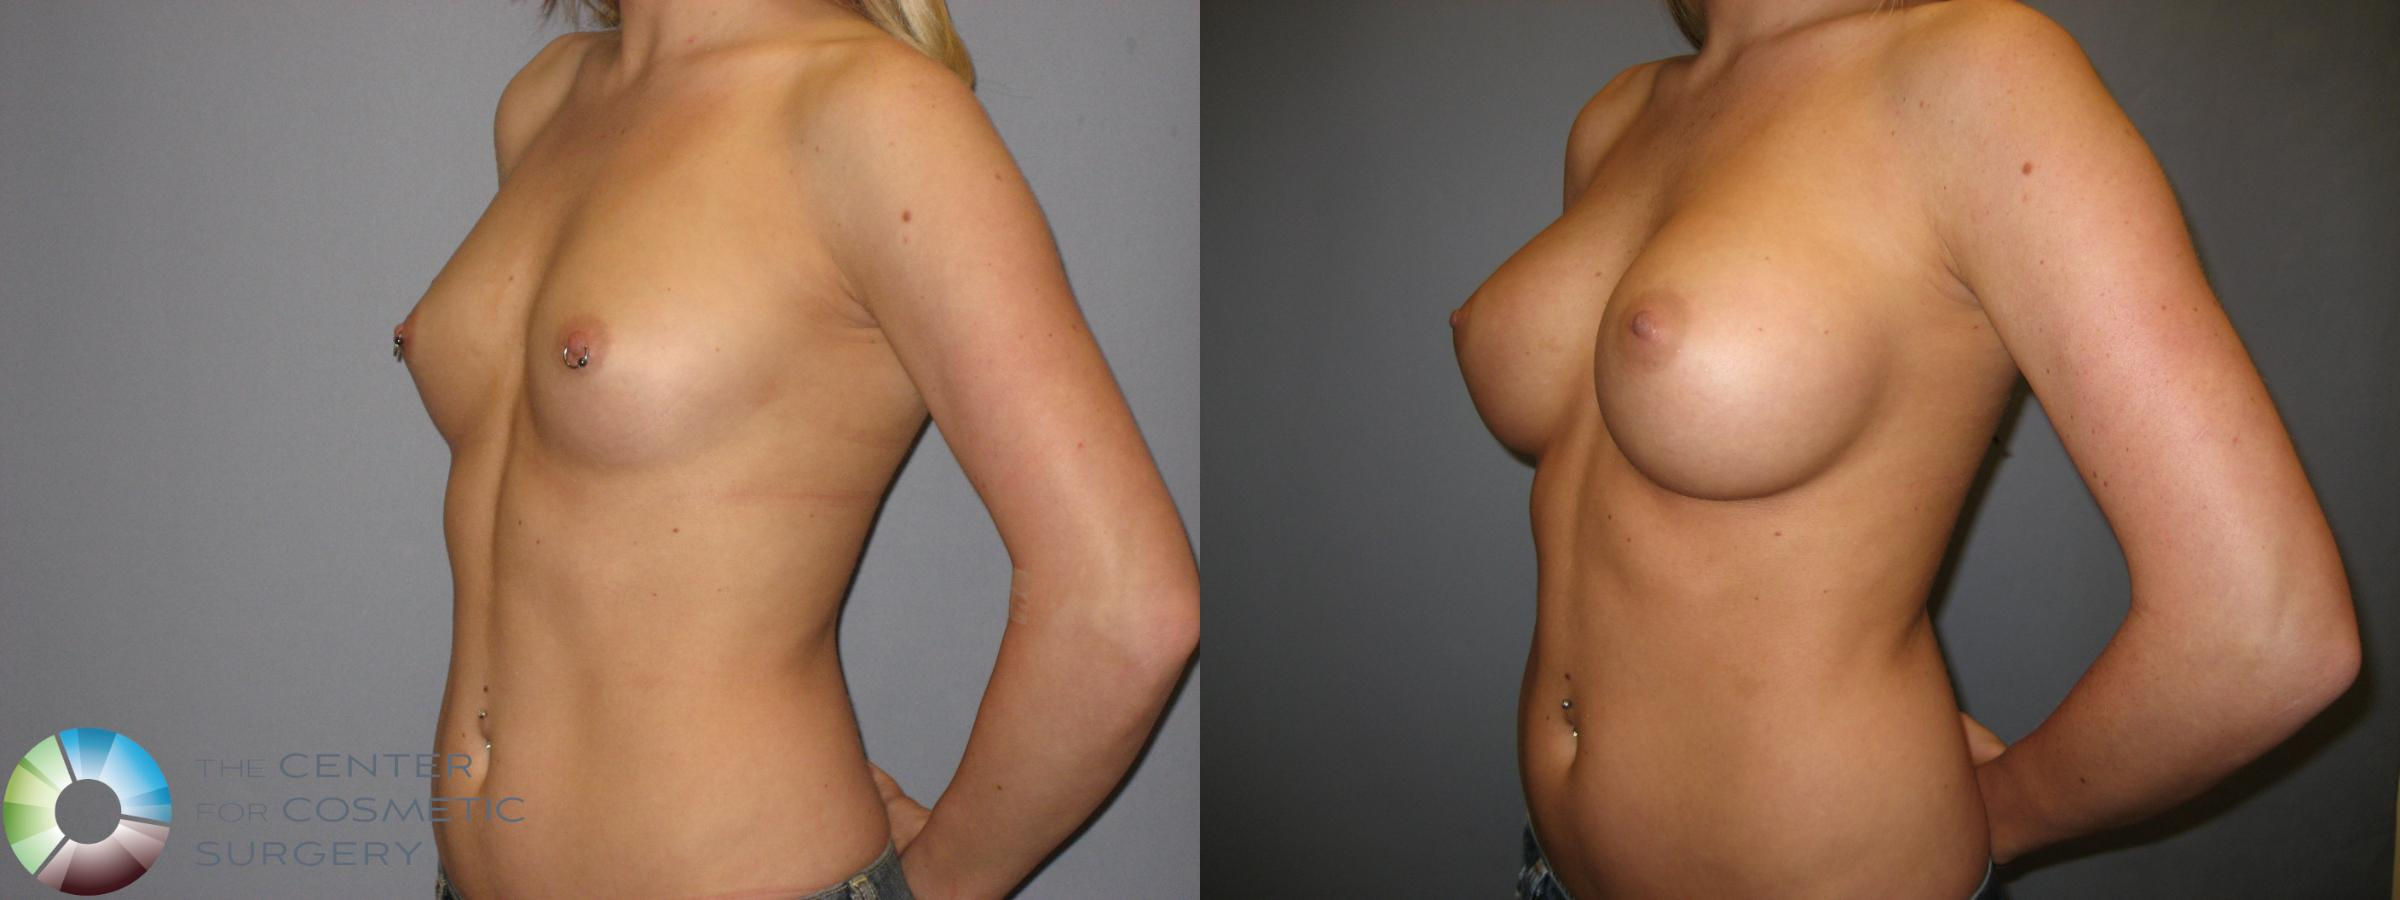 Breast Augmentation Case 172 Before & After View #2 | Golden, CO | The Center for Cosmetic Surgery